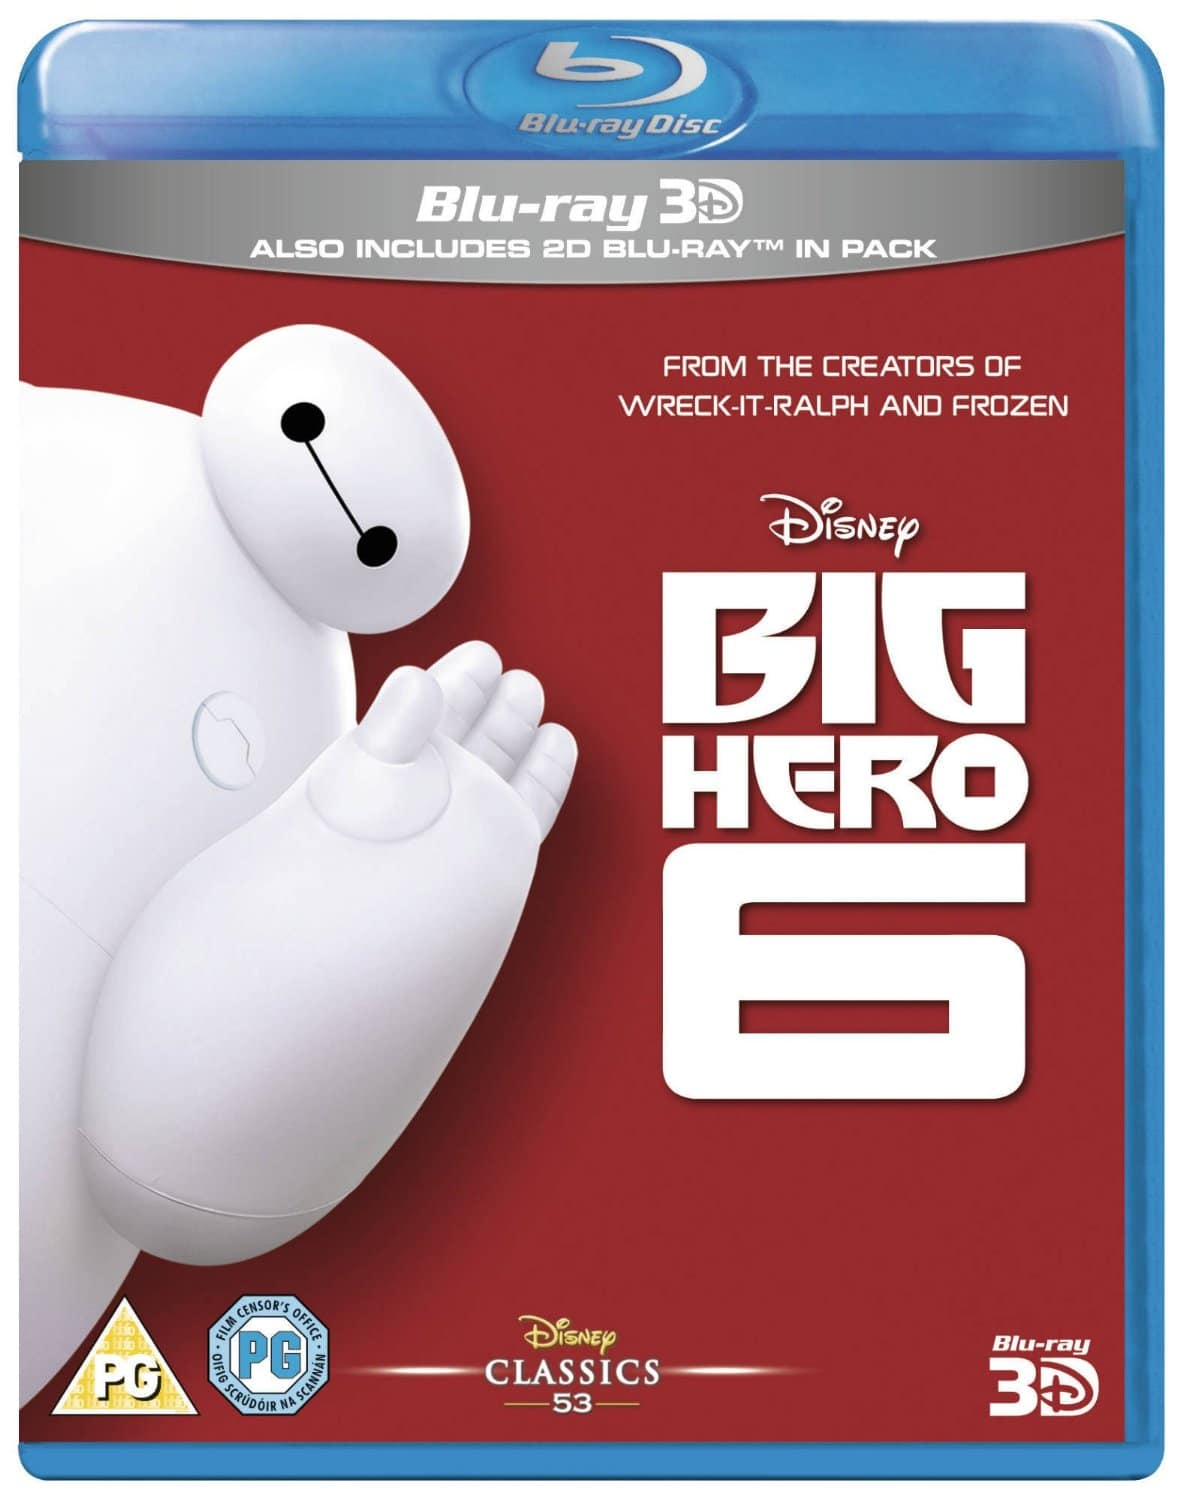 2x Disney 3D Blu-rays (Region Free): Big Hero 6, Tangled, Frozen, The Lion King and More  $35